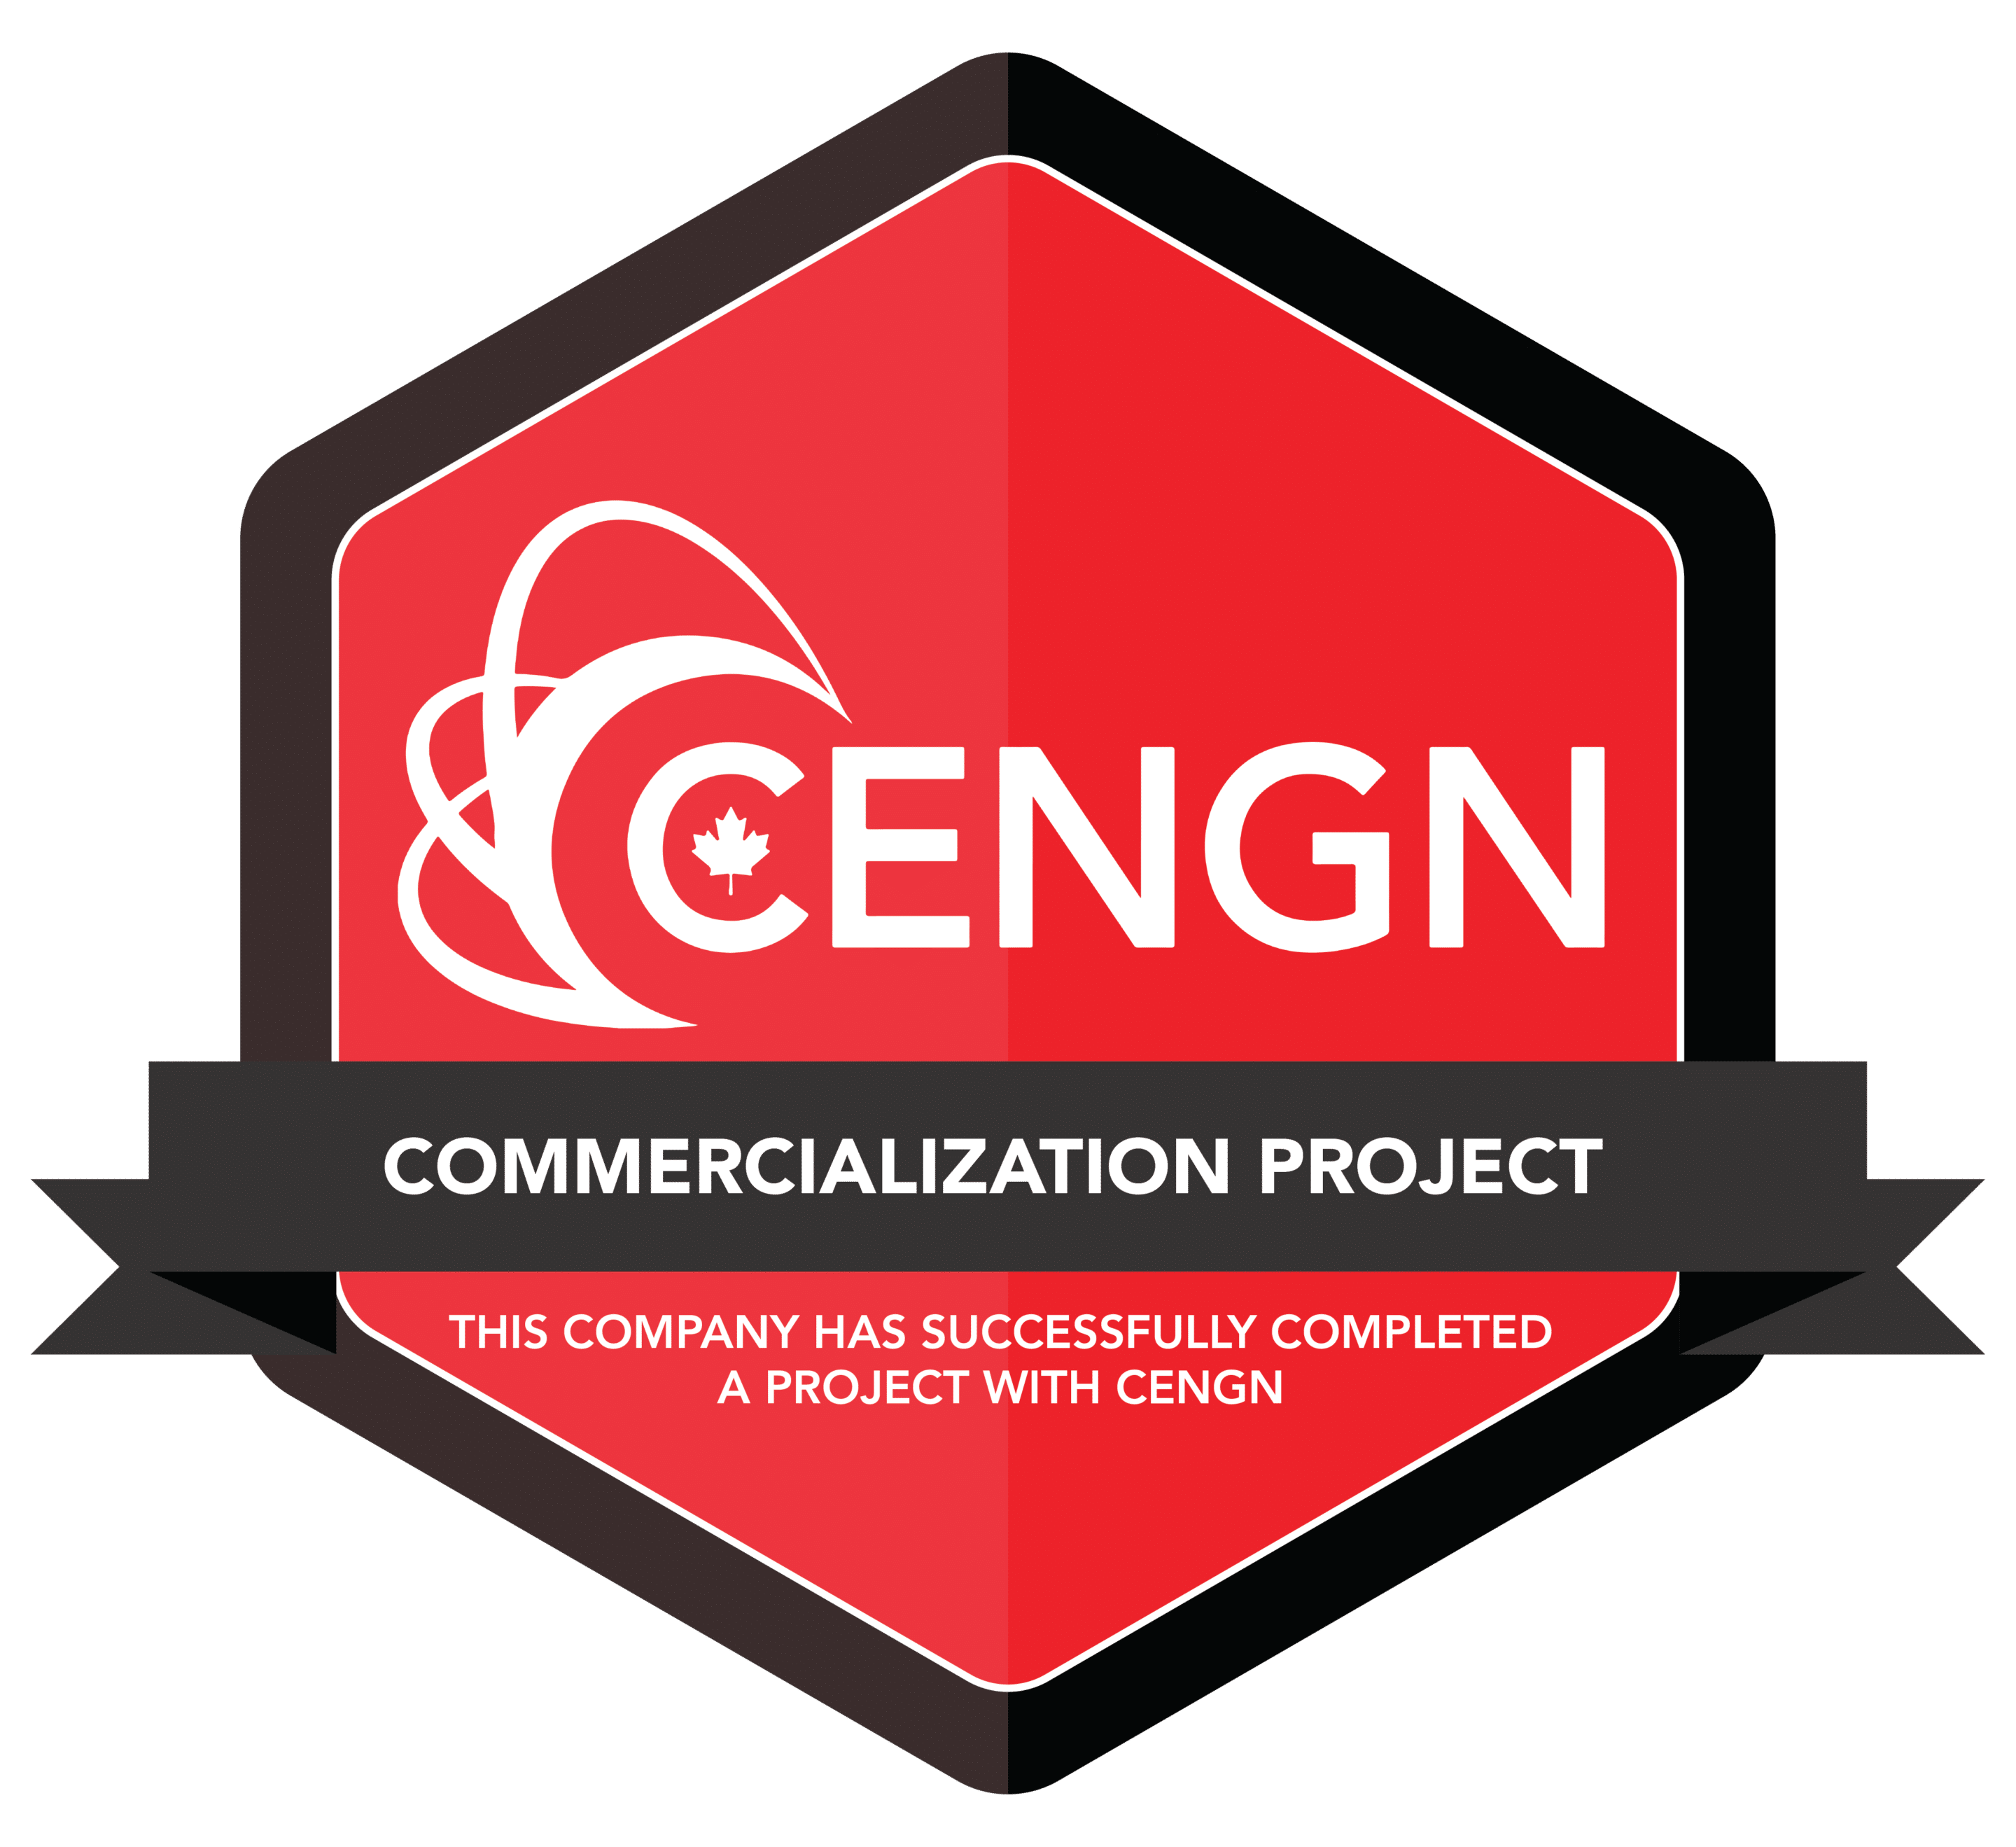 cegn commercialization badge